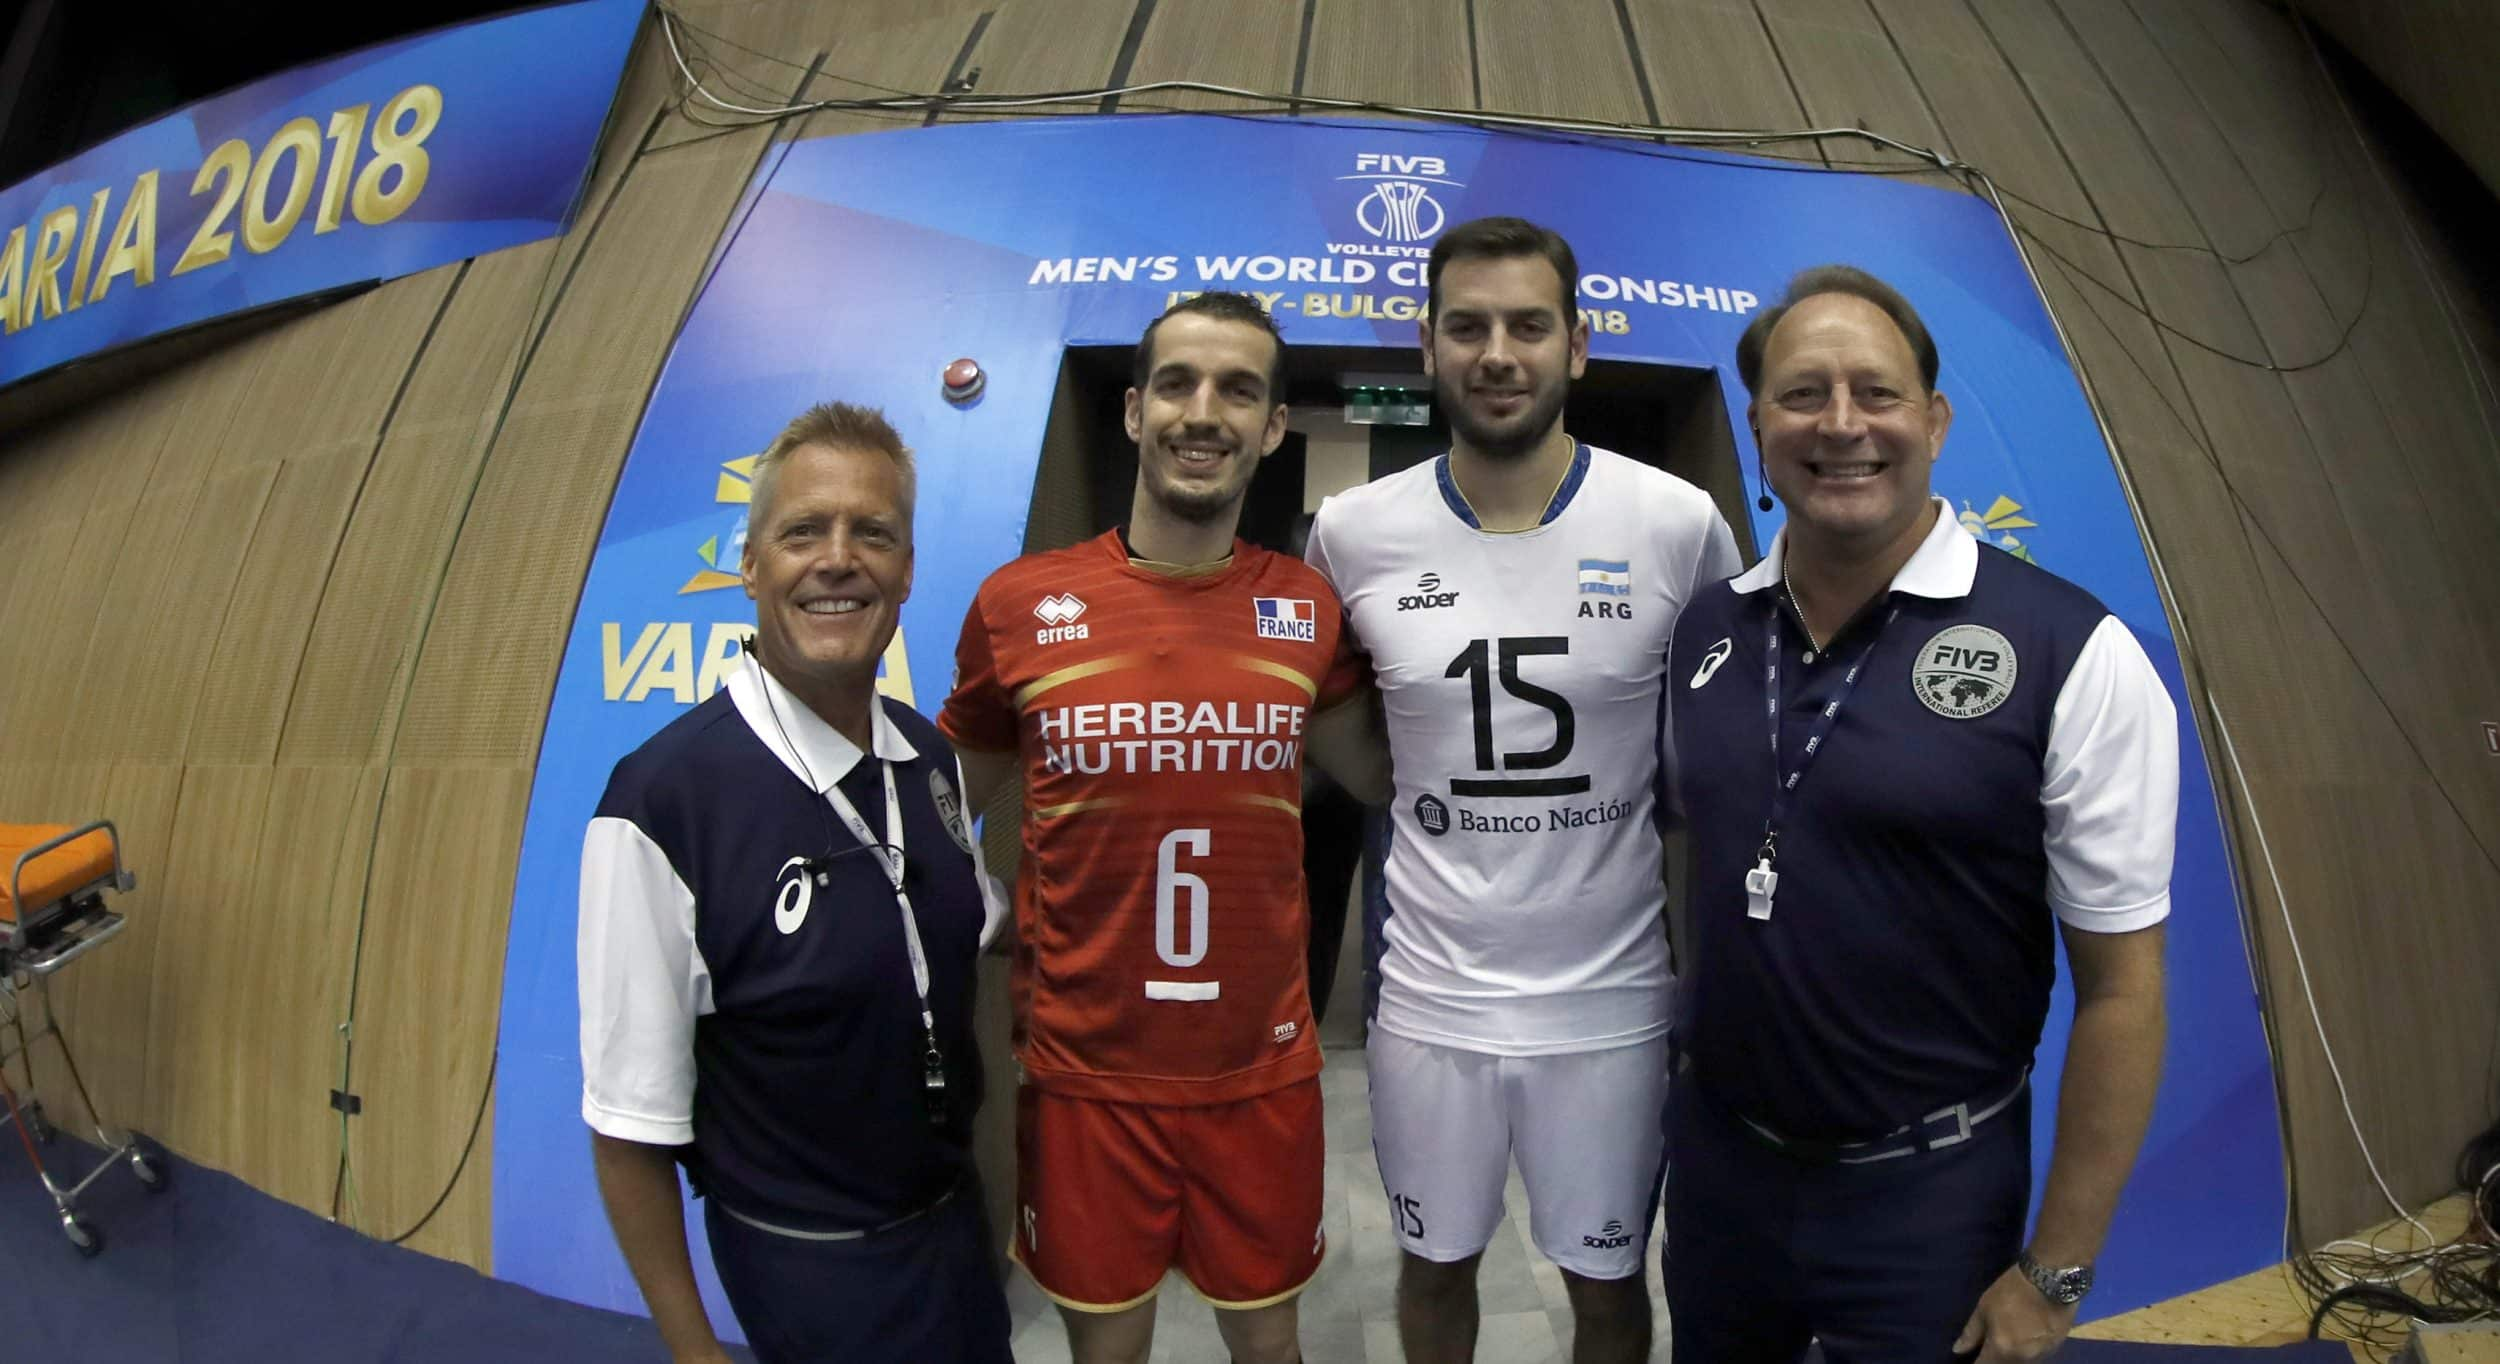 brassard-de-capitaine-volley-ball-règlement-ffvb-2018-2019-3